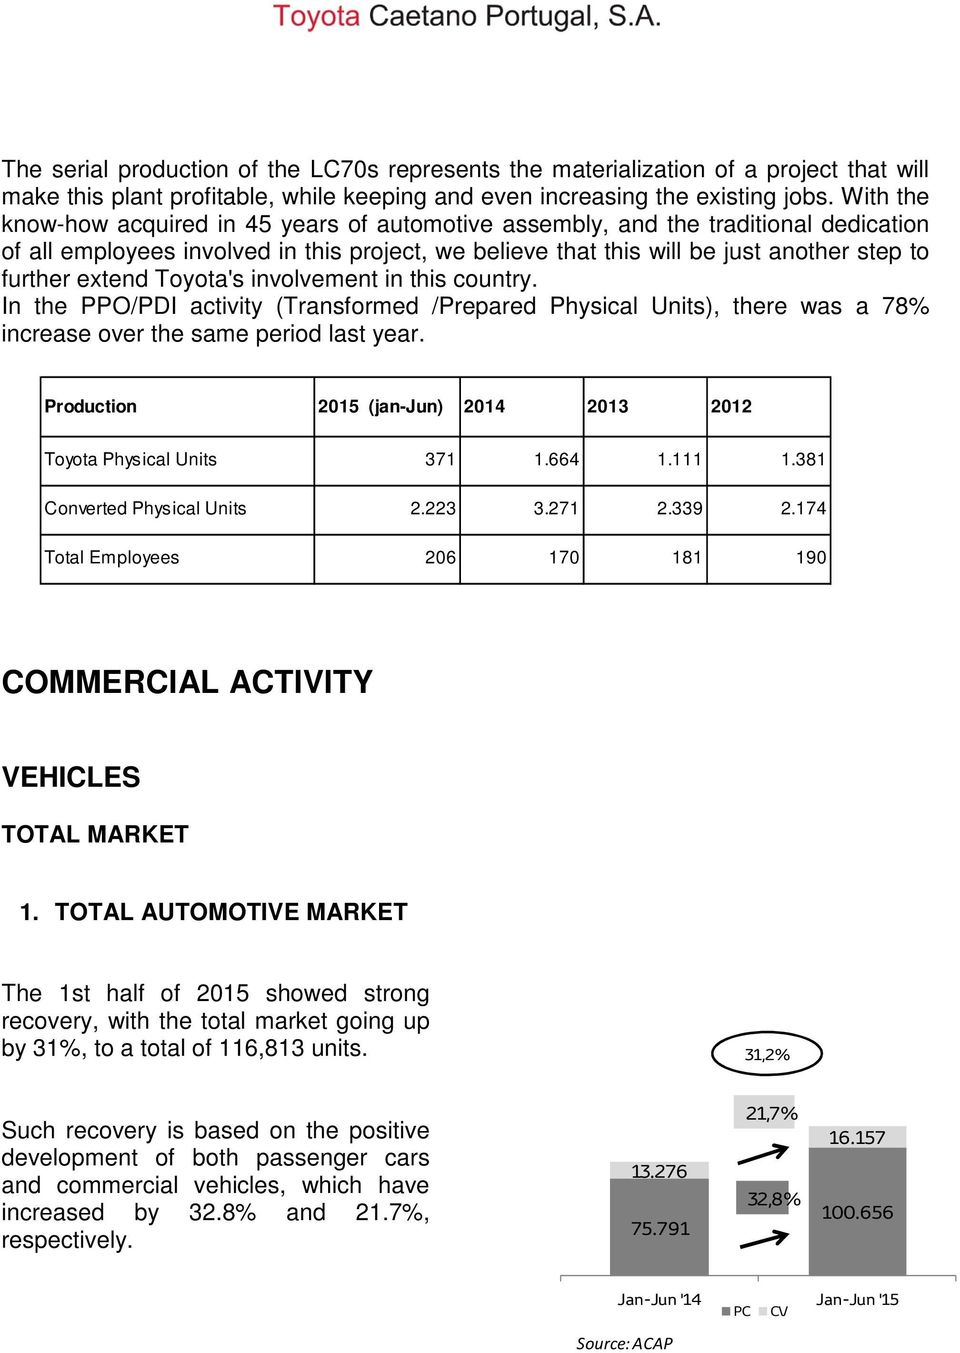 extend Toyota's involvement in this country. In the PPO/PDI activity (Transformed /Prepared Physical Units), there was a 78% increase over the same period last year.